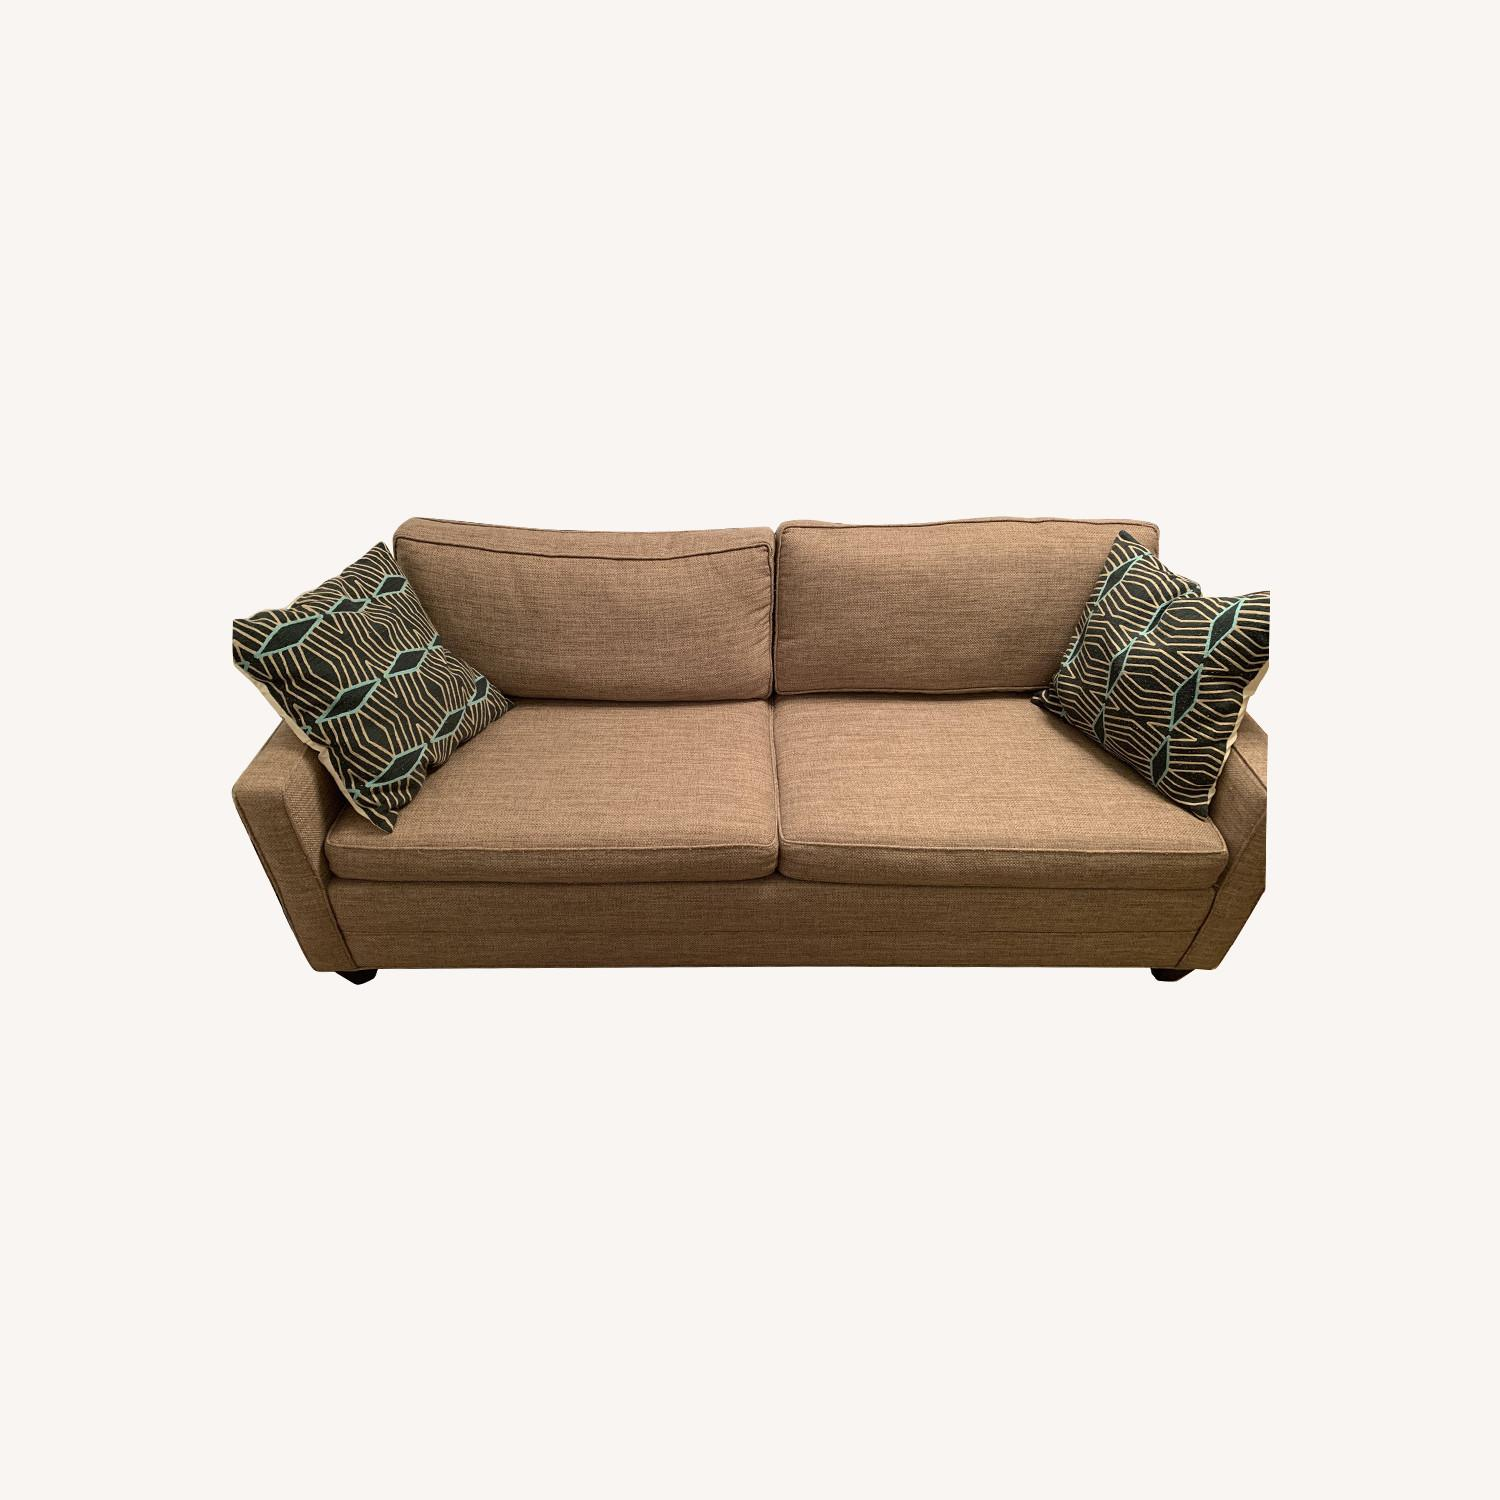 Carlyle Queen Sleeper Sofa - image-0